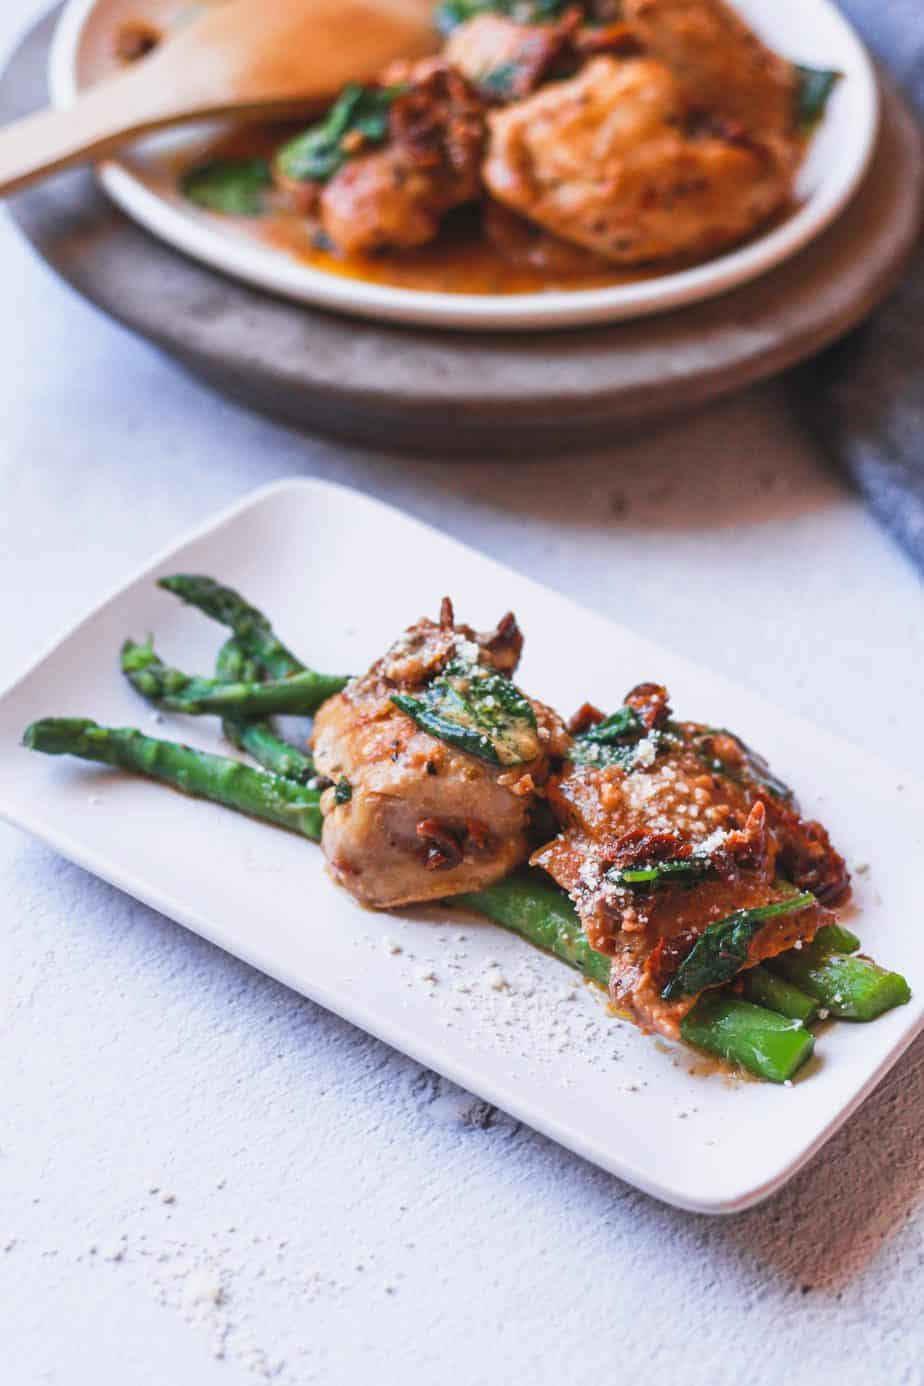 shot of sun-dried tomato chicken on plate with asparagus